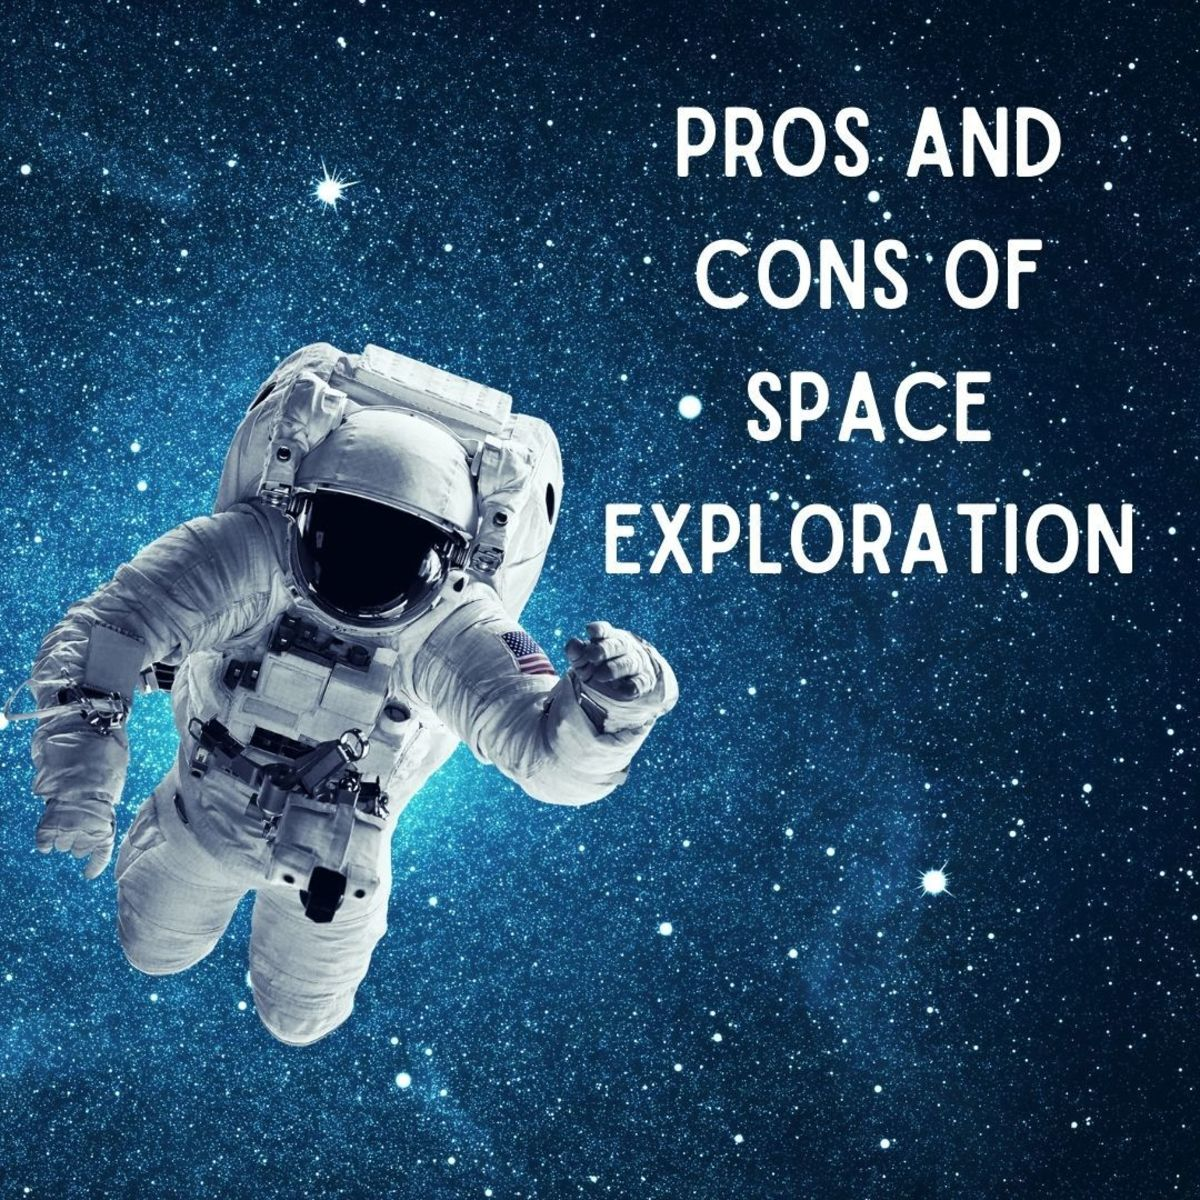 What are the advantages and disadvantages of continuing to explore outer space?